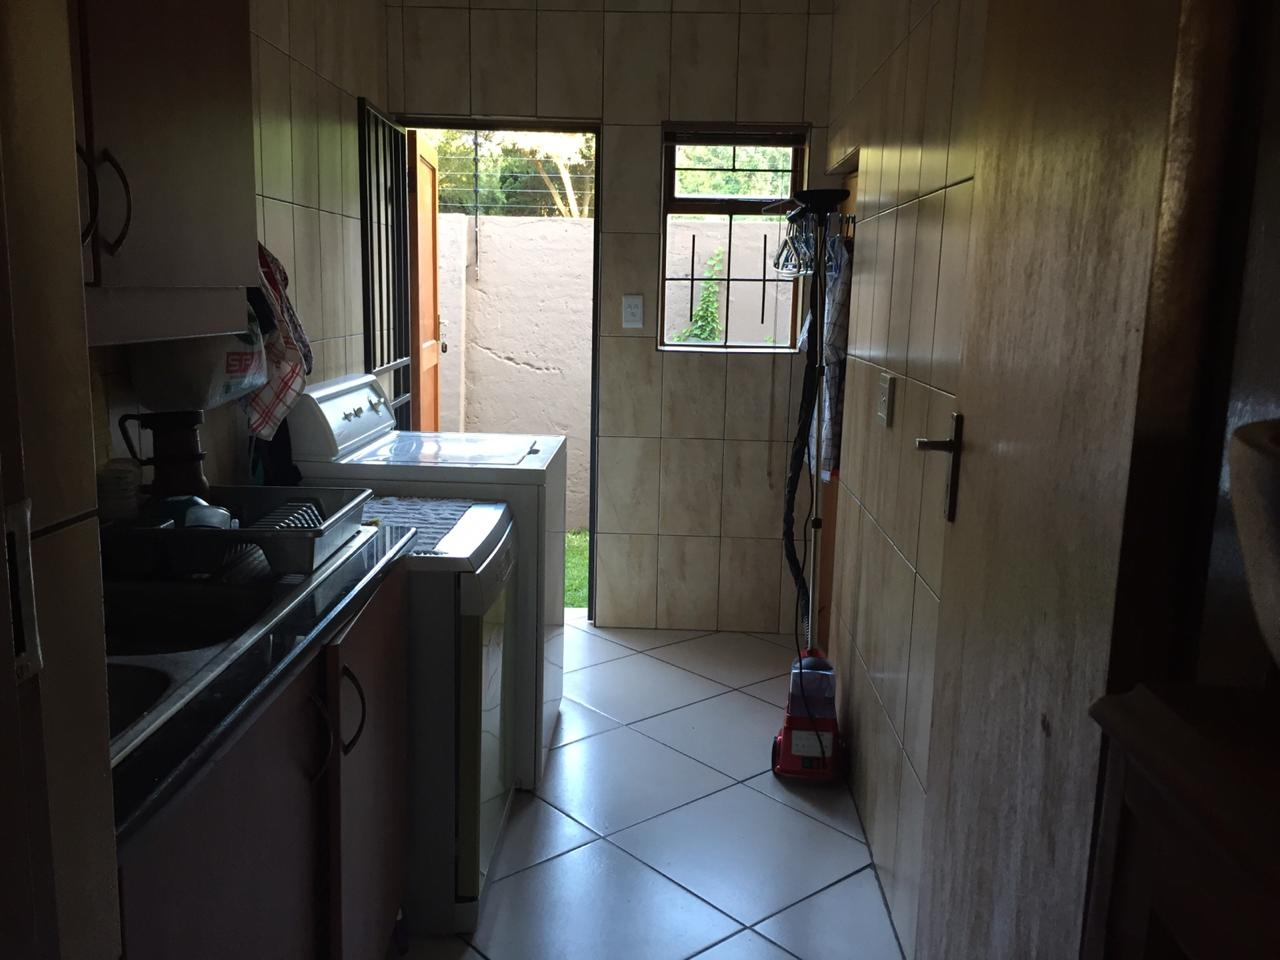 Scullery for washing opens to outside washing line